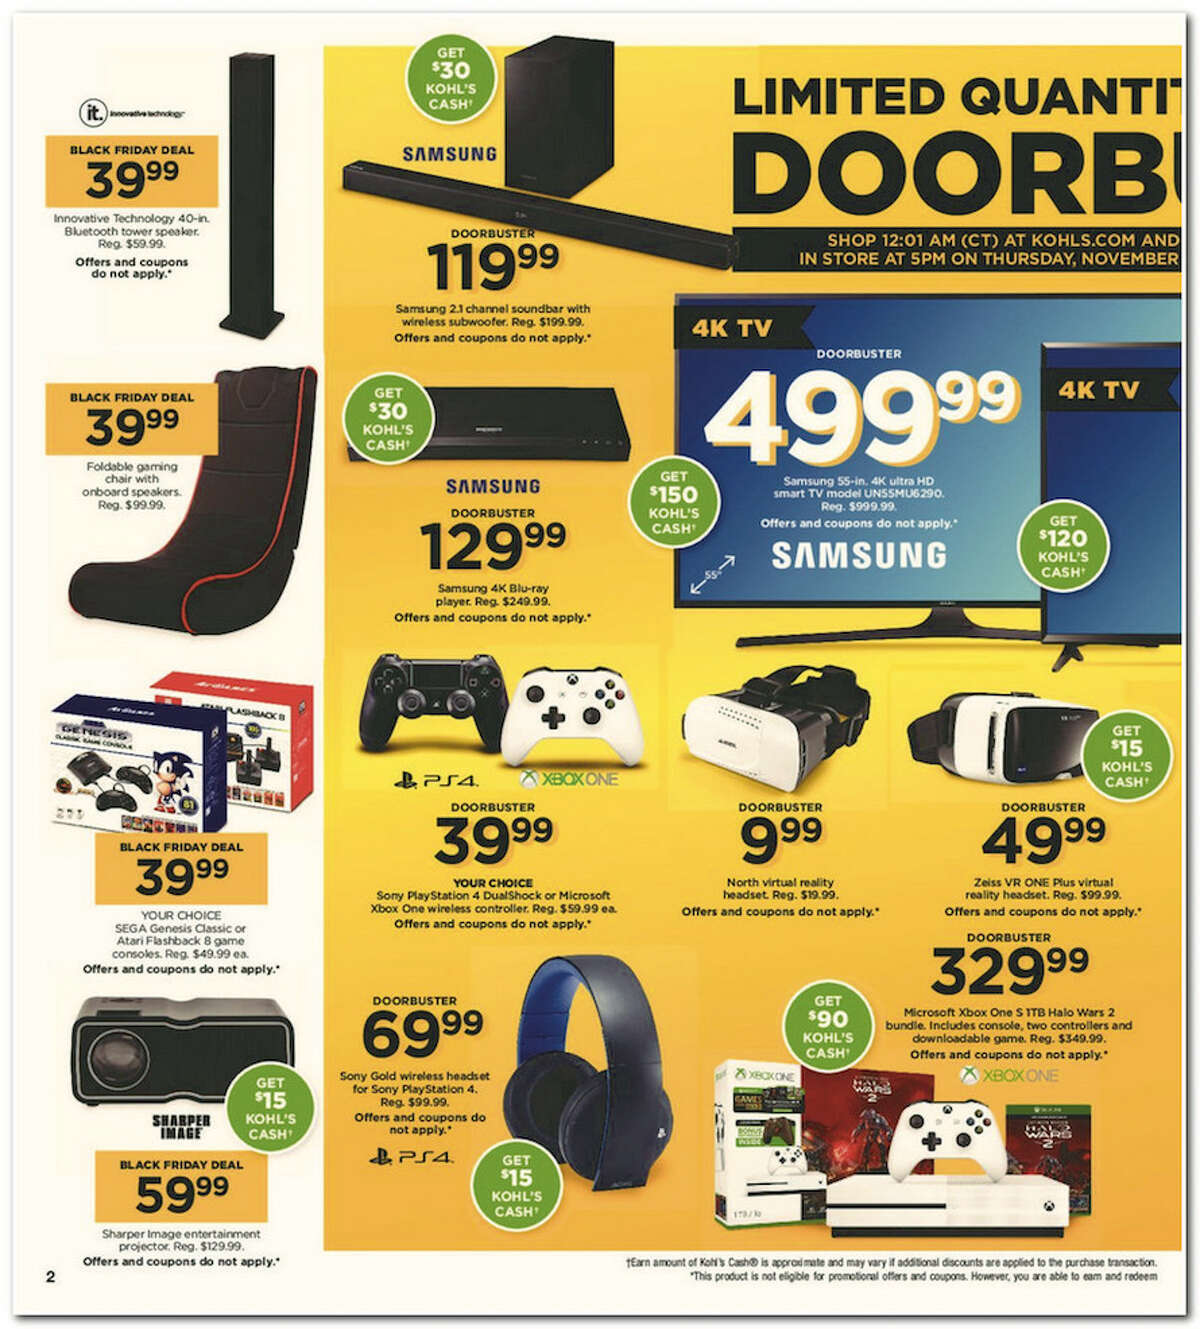 Kohl's has released its 64-page 2017 Black Friday Doorbuster ad. Prices and promotion are valid Thursday, Nov. 23 at 5 p.m. and are subject to change and availability, based on the retailer's determination.